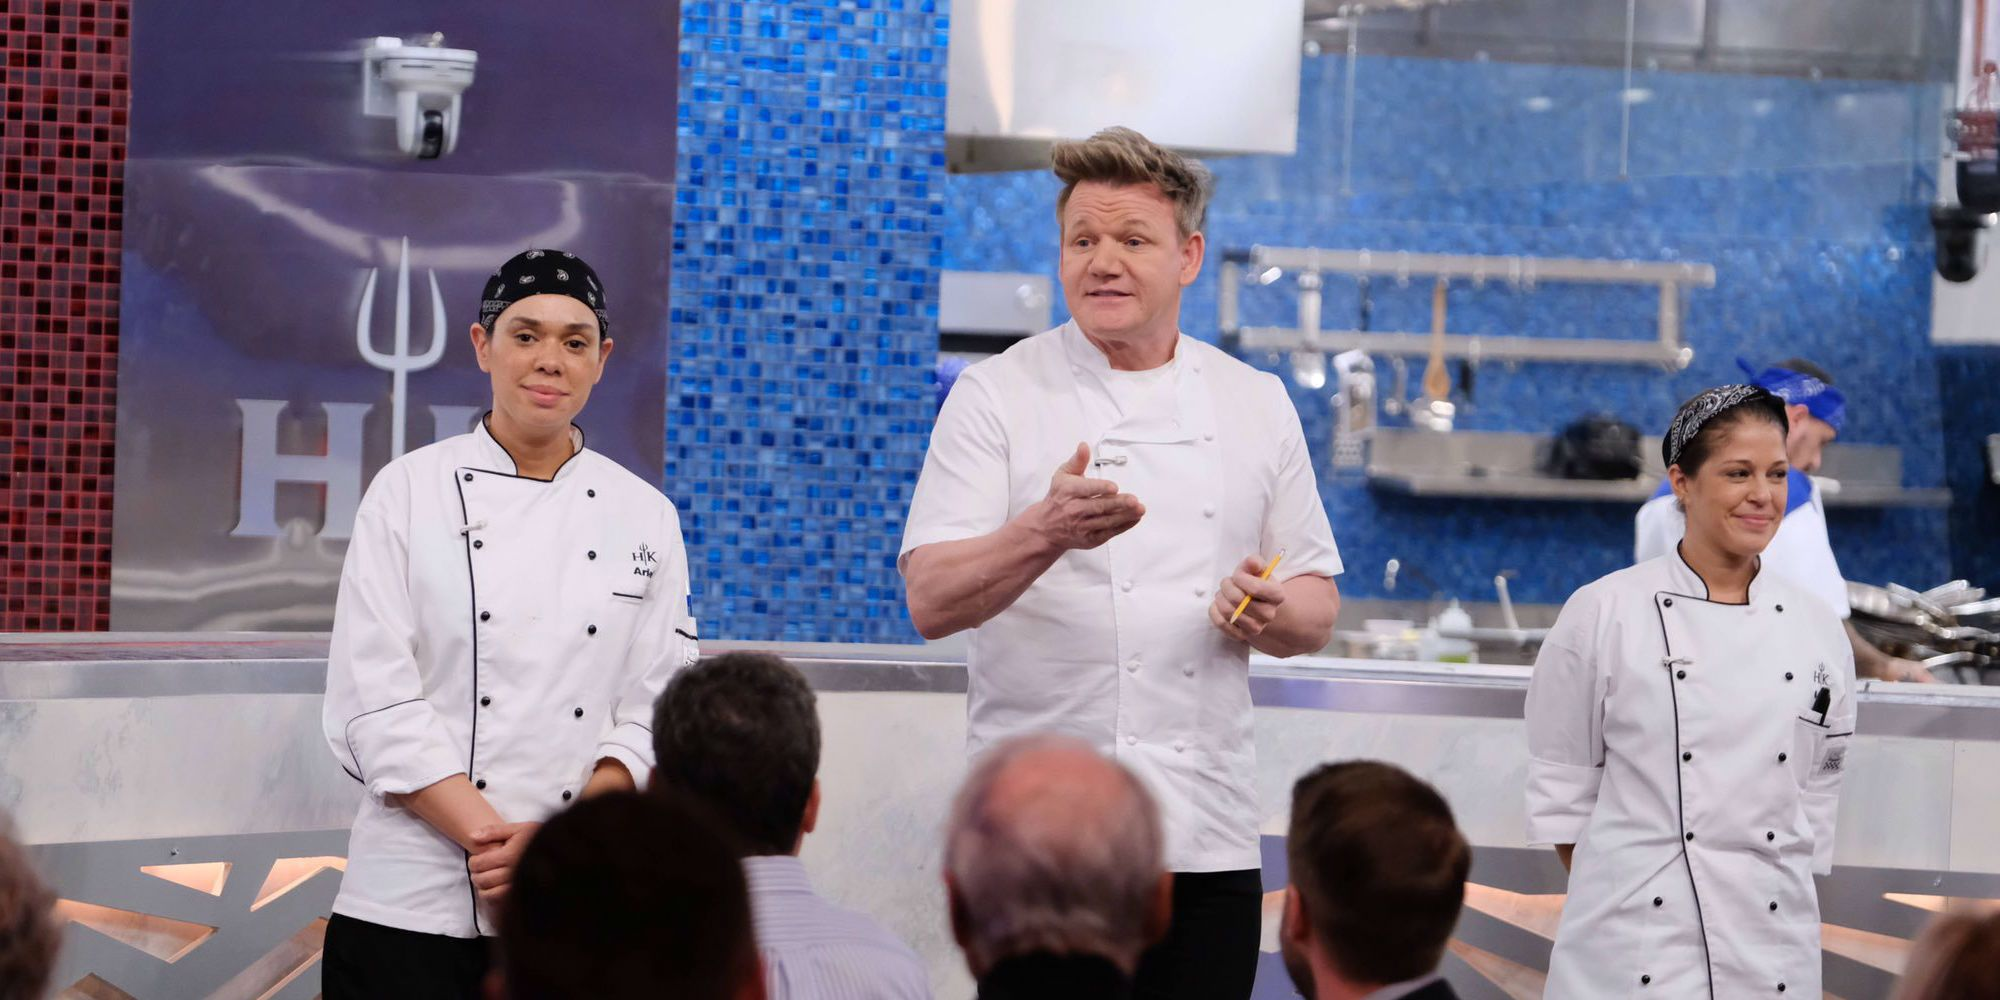 Hell's Kitchen Season 18: What Happened To The Chefs After The Show